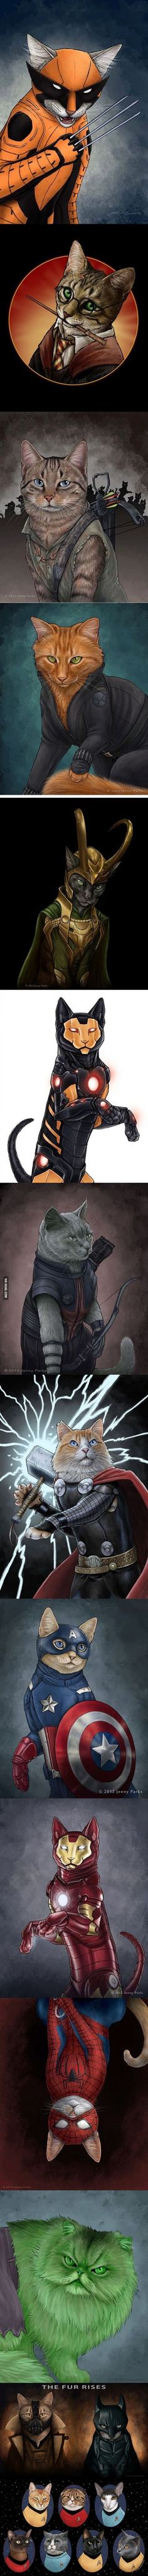 If our favourite characters were cats